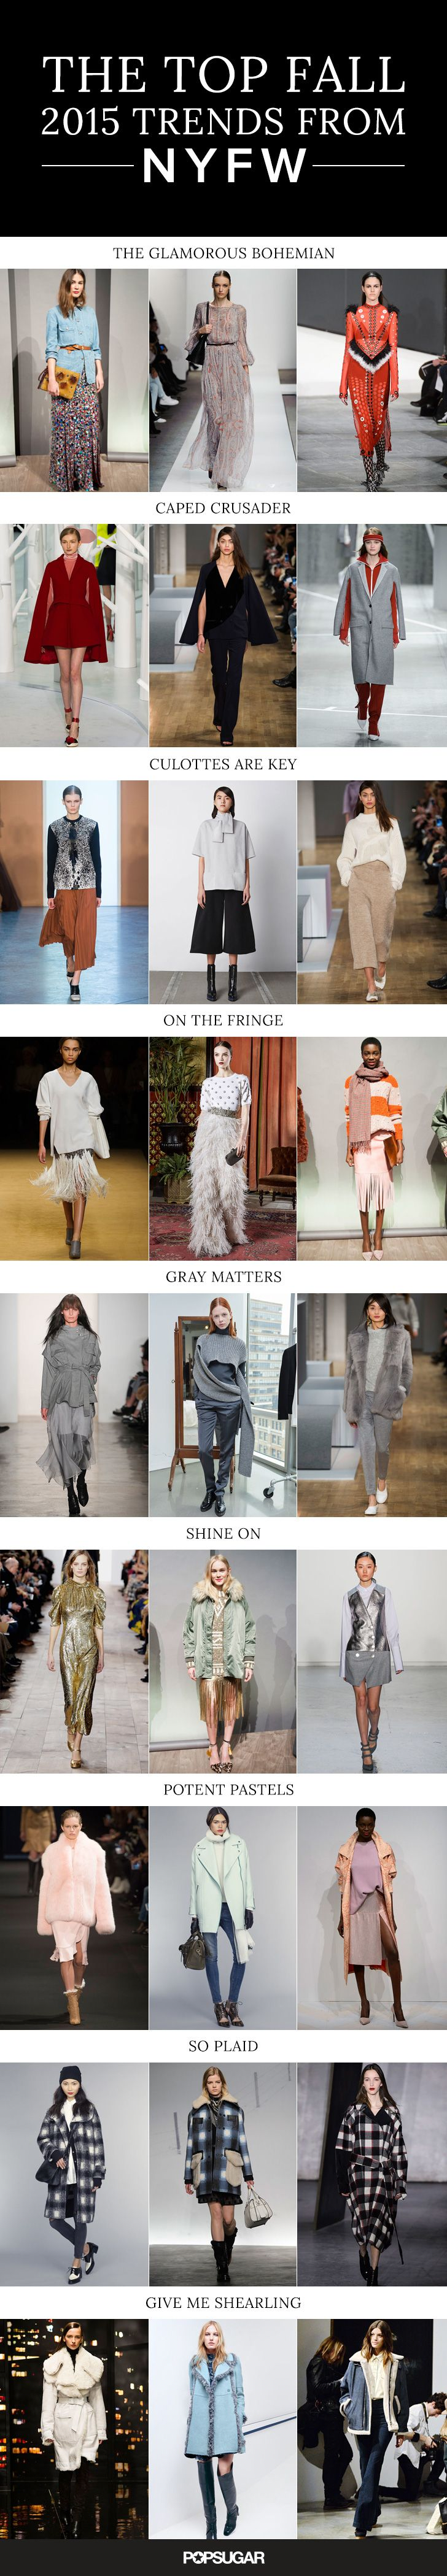 The biggest New York Fashion Week trends for Fall 2015 ALREADY